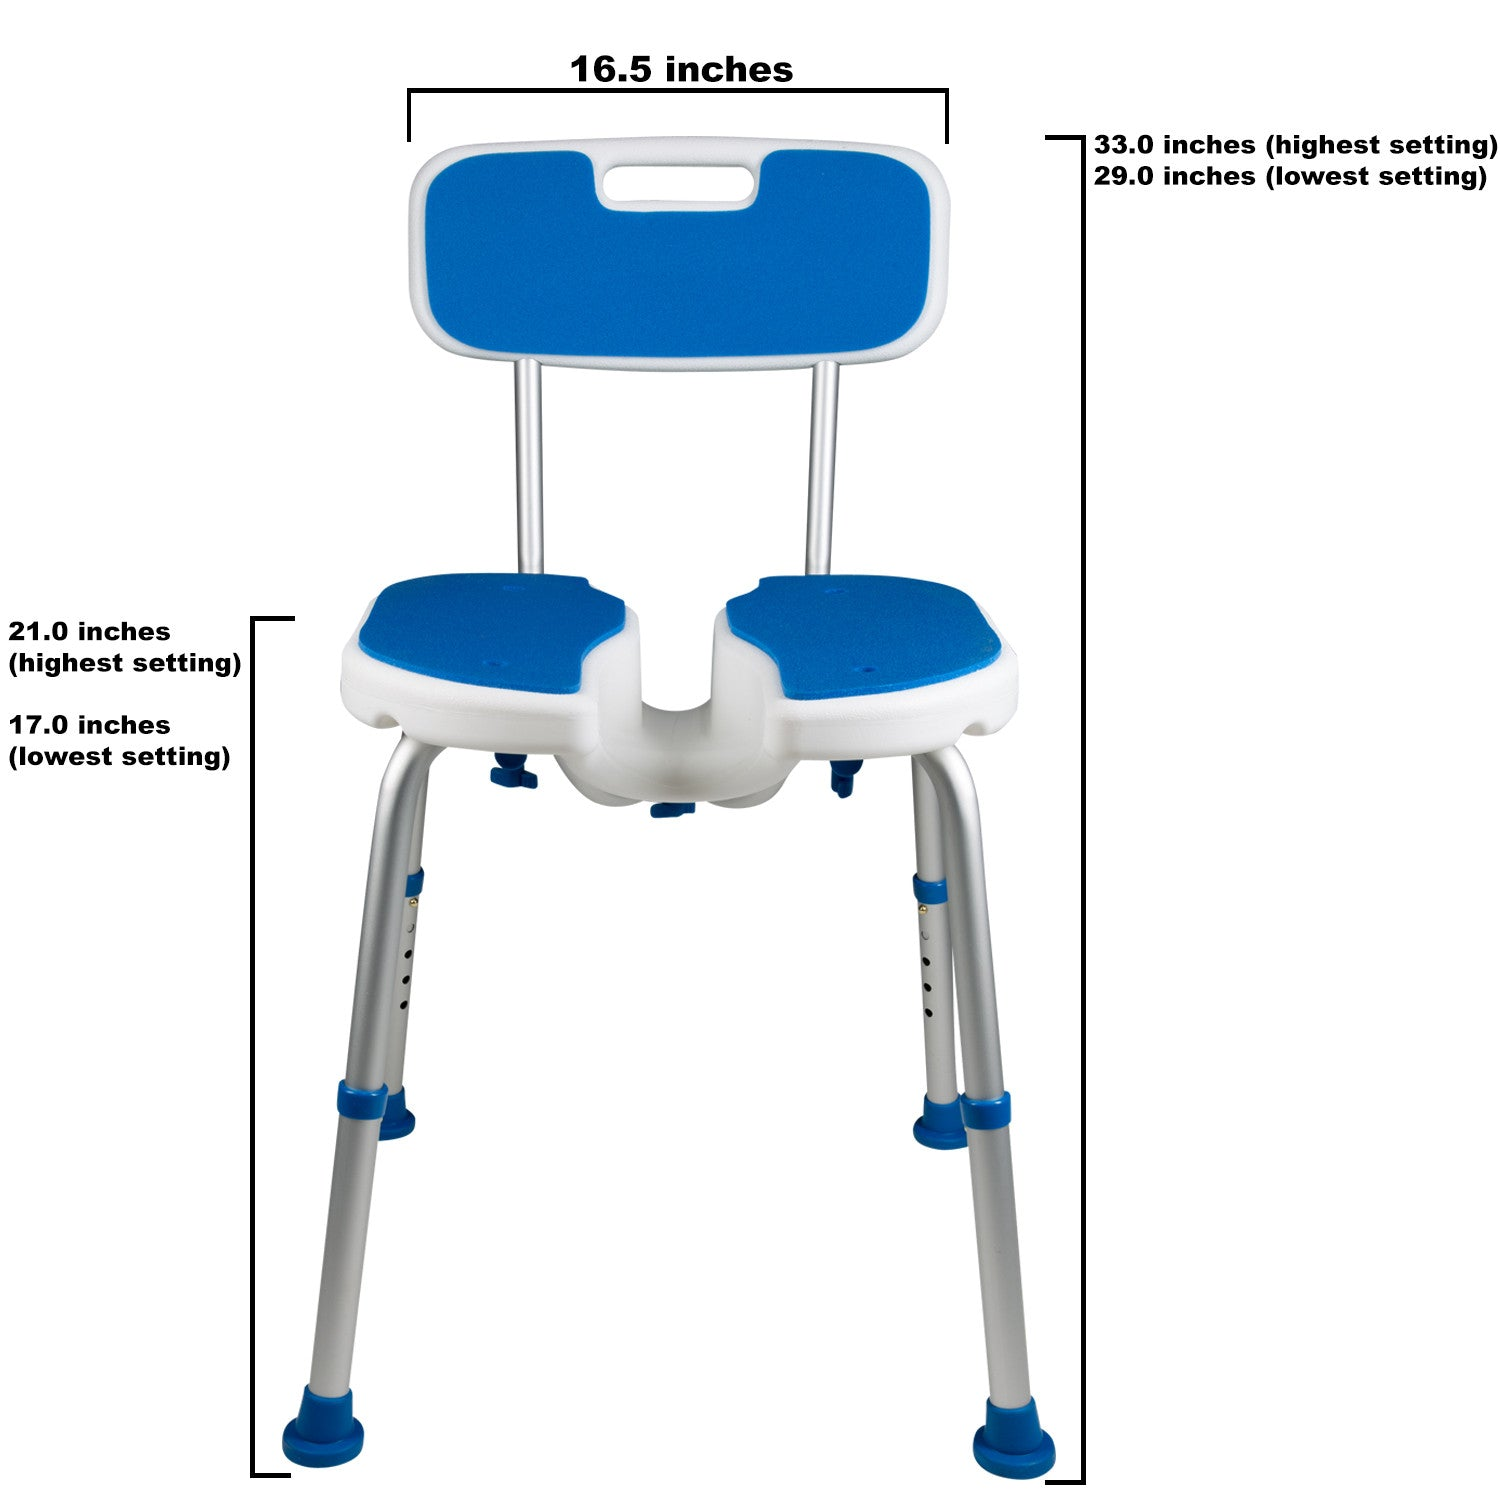 7105 Padded Bath Shower Safety Seat With Hygienic Cutout